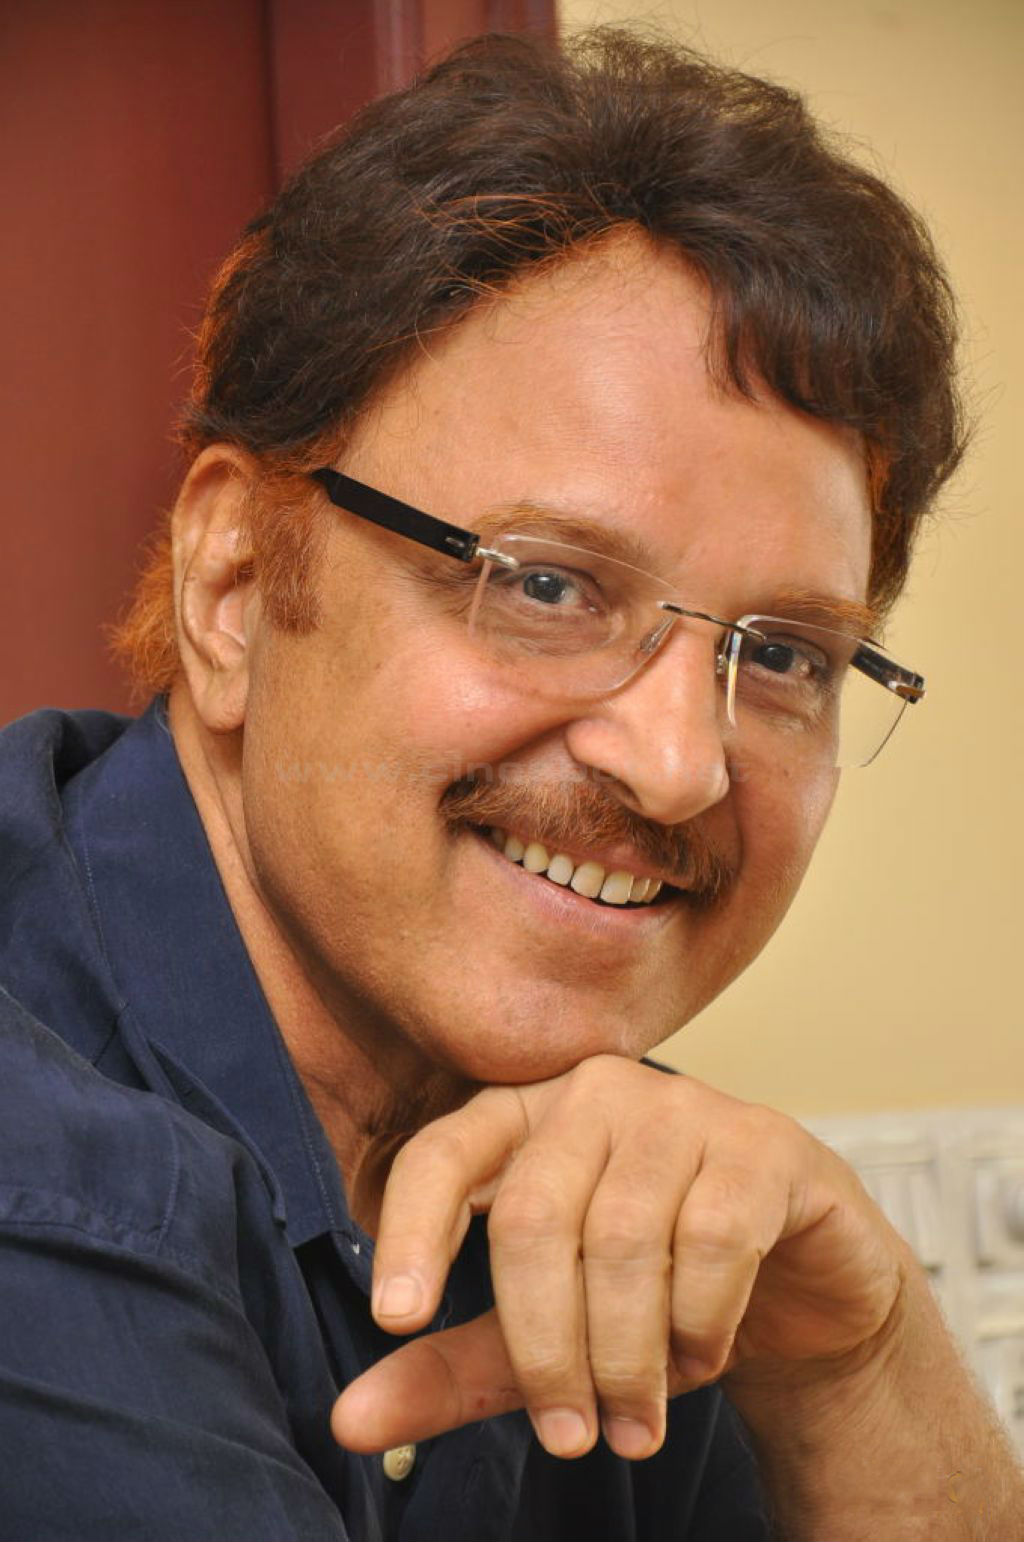 sarath babu second wifesarath babu wife, sarath babu md, sarath babu rama prabha, sarath babu marriage, sarath babu iim, sarath babu interview, sarath babu snehalatha, sarath babu nellore, sarath babu net worth, sarath babu death, sarath babu second wife, sarath babu wife photos, sarath babu family pictures, sarath babu tamil movies list, sarath babu and ramaprabha story, sarath babu east brunswick, sarath babu doctor east brunswick, sarath babu md nj, sarath babu songs, sarath babu movies list